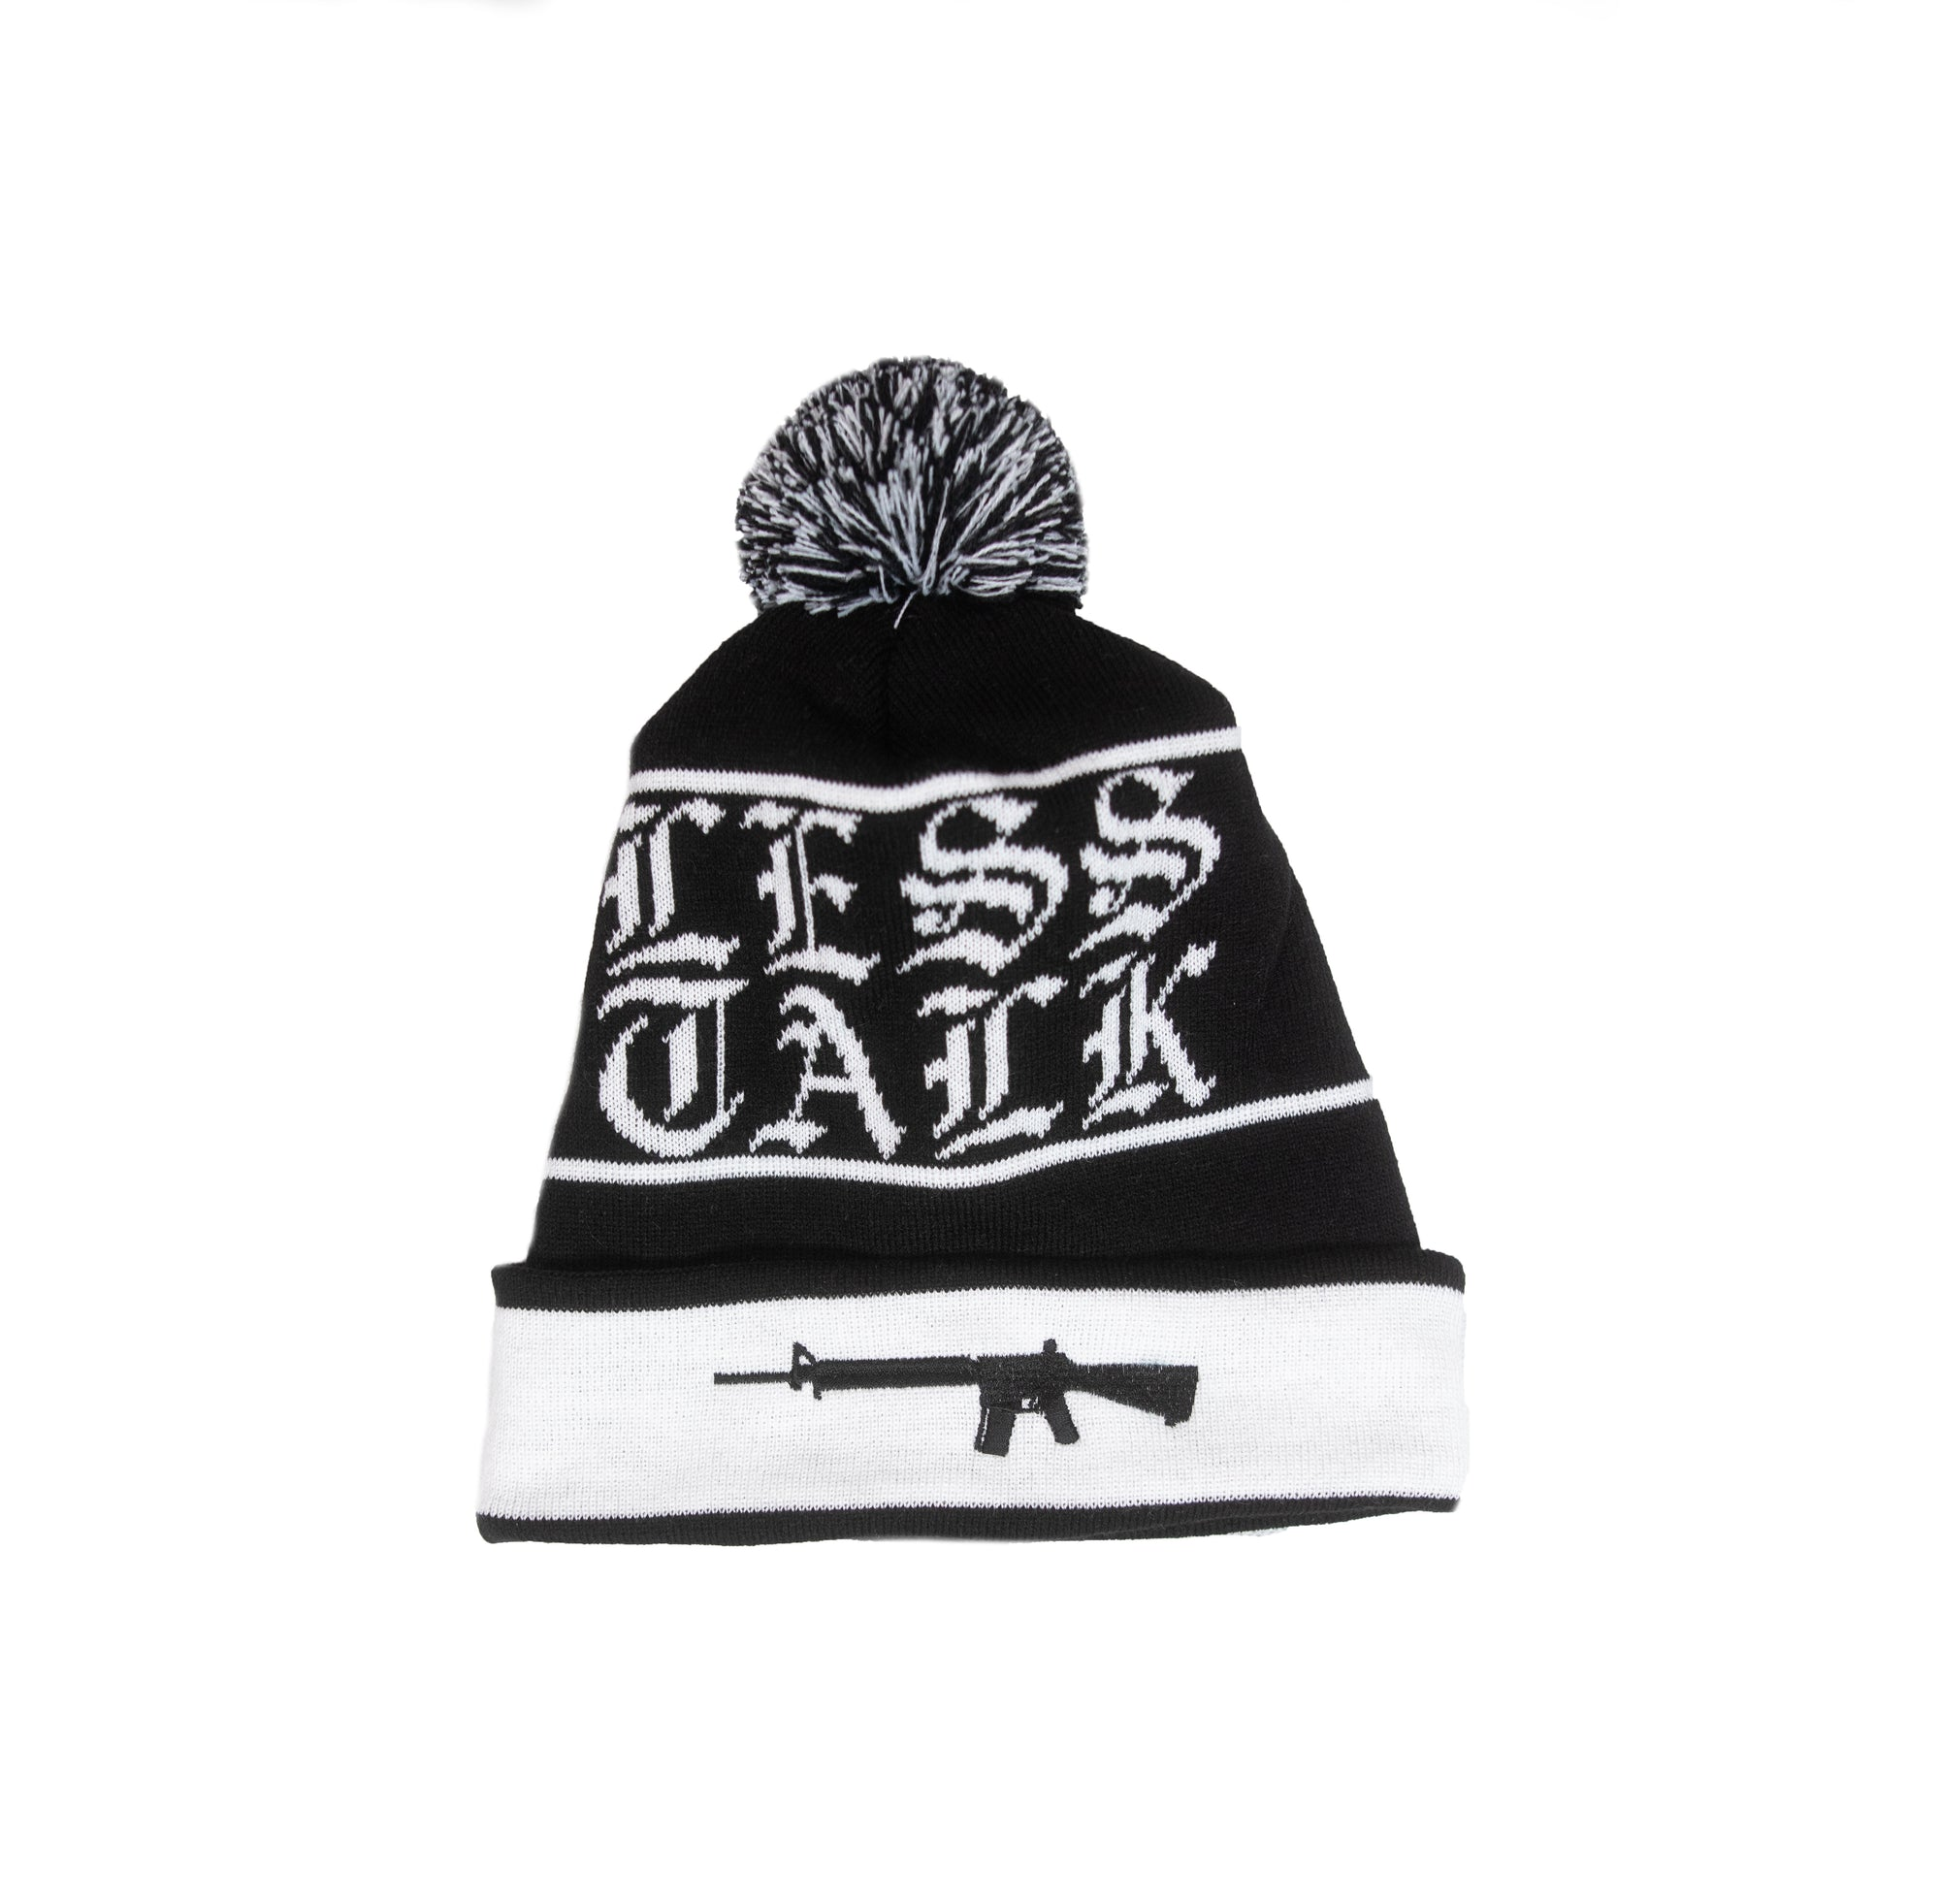 """Less Talk"" Pombeanie"